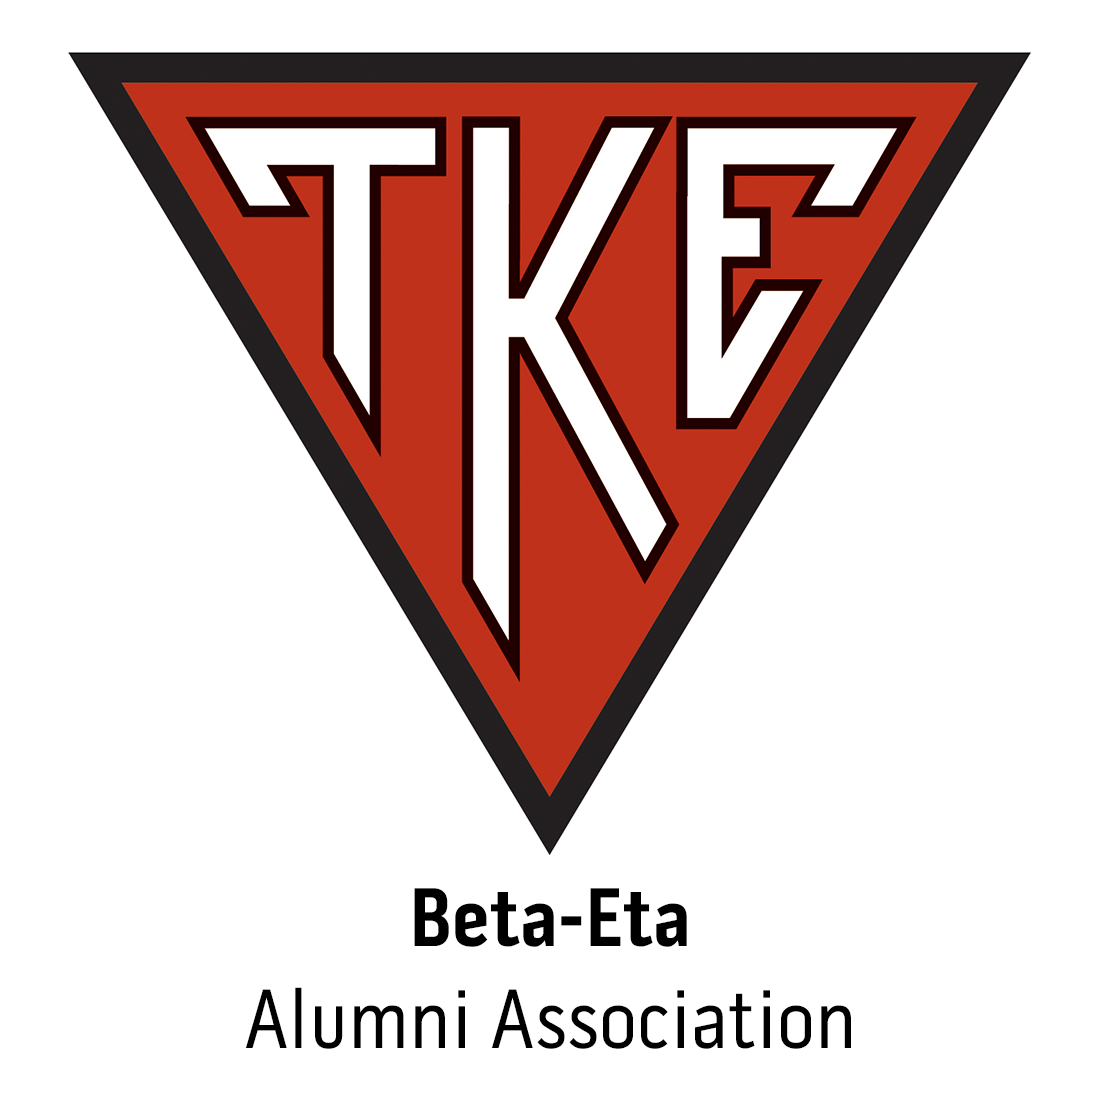 Beta-Eta Alumni Association at University of Missouri of Science and Technology